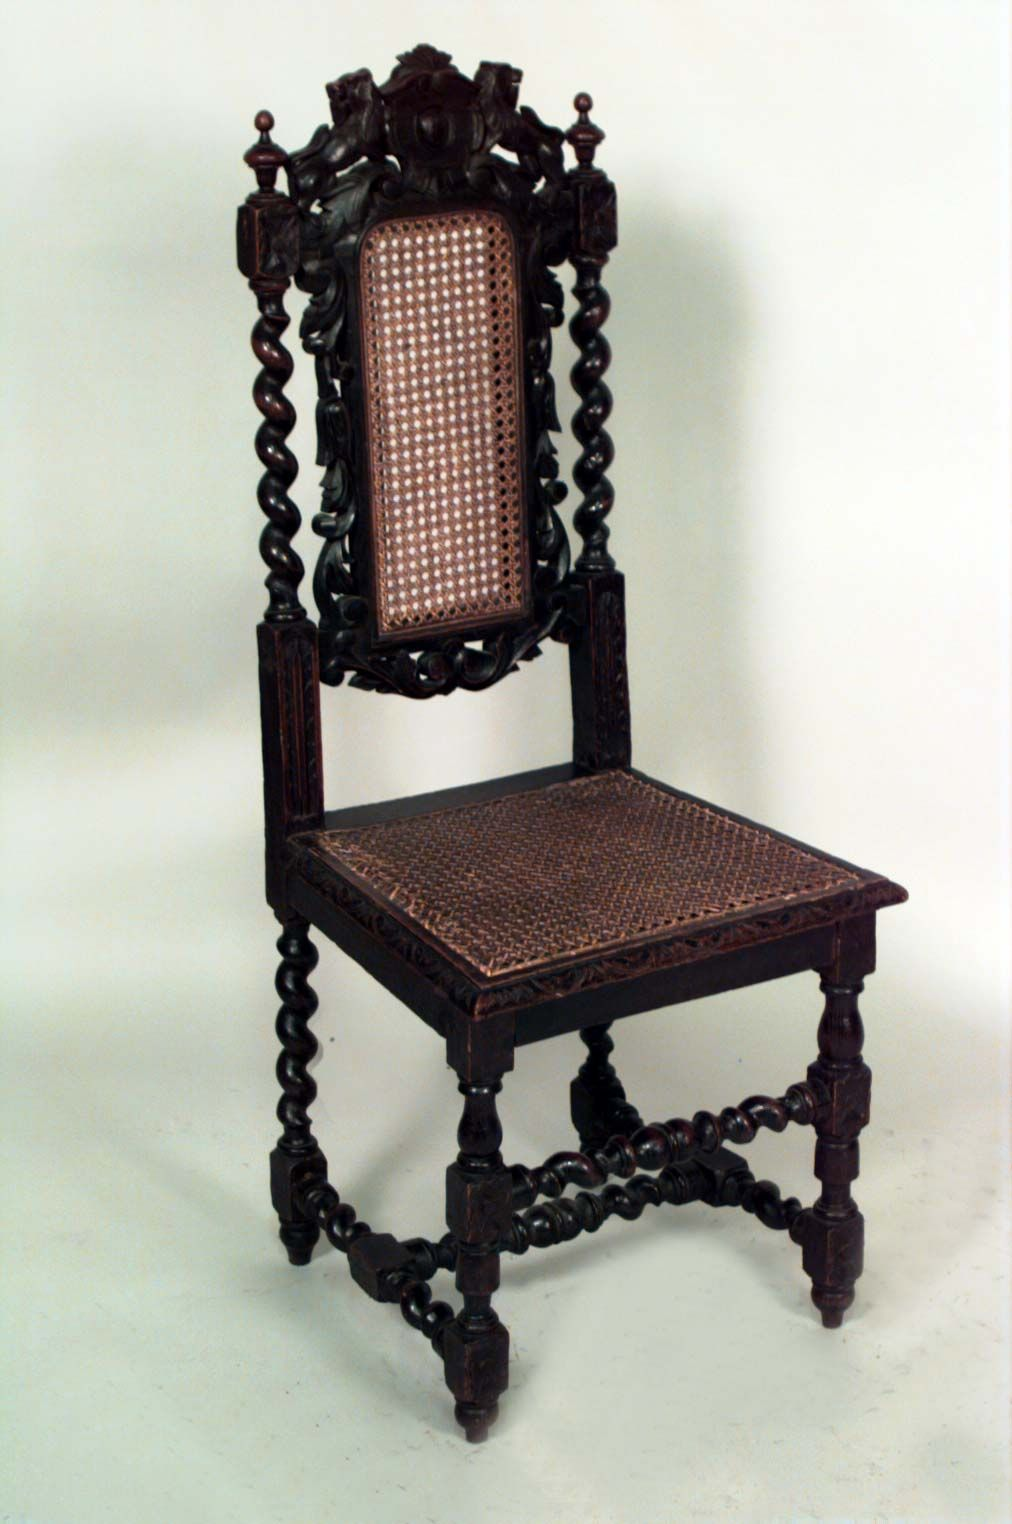 About Us | Set Of 4 English Jacobean Style Oak Side Chairs With Cane Seat  And Back And Lions On Top Of Back (19/20th Cent.)